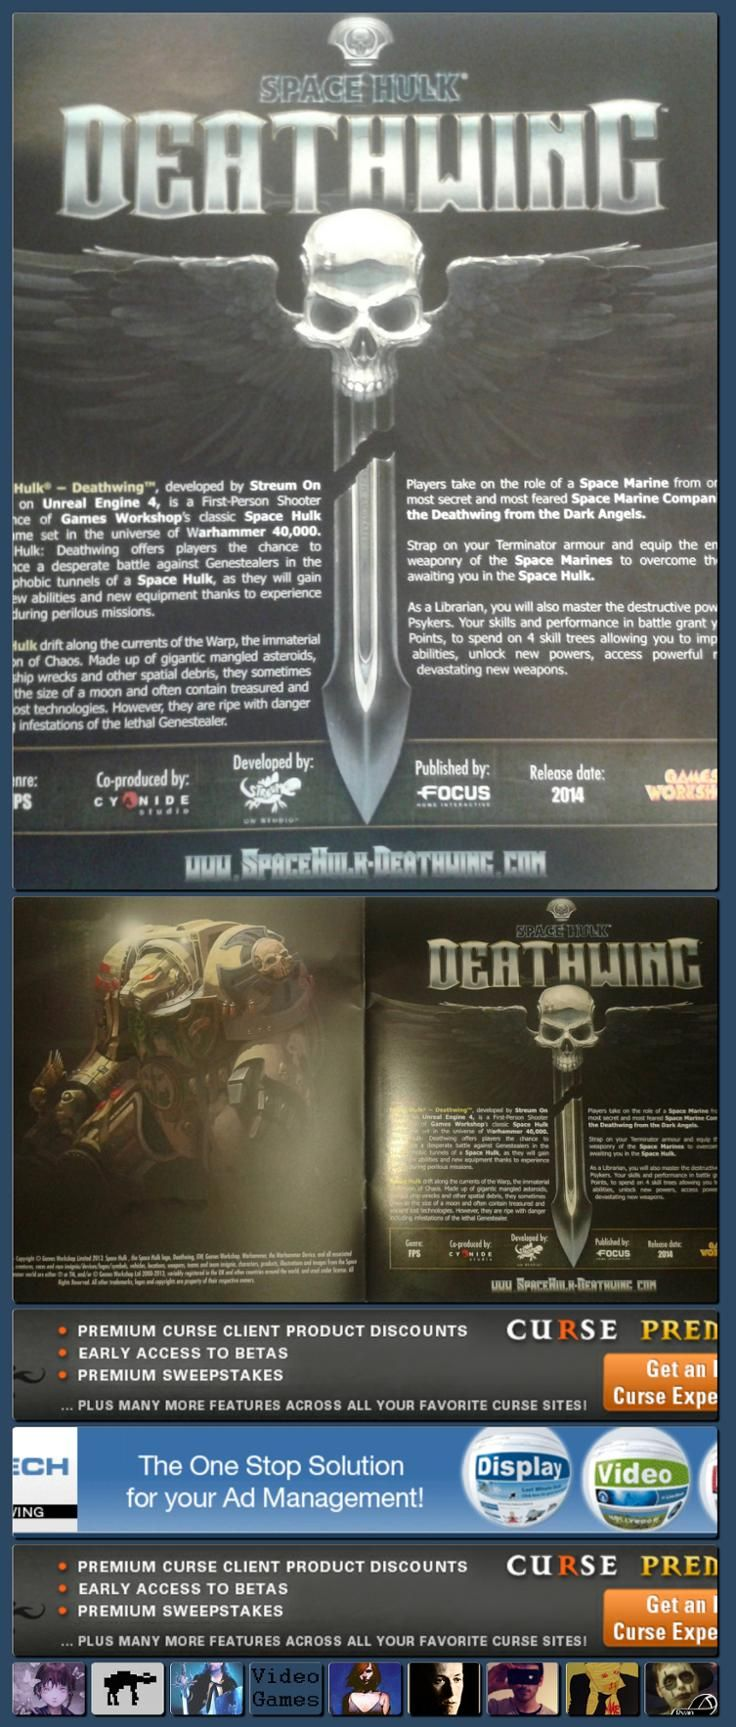 Space Hulk: Deathwing Leaked (FPS / Unreal Engine 4 / Streumon Studio) - NeoGAF [Collage made with one click using http://pagecollage.com] #pagecollage